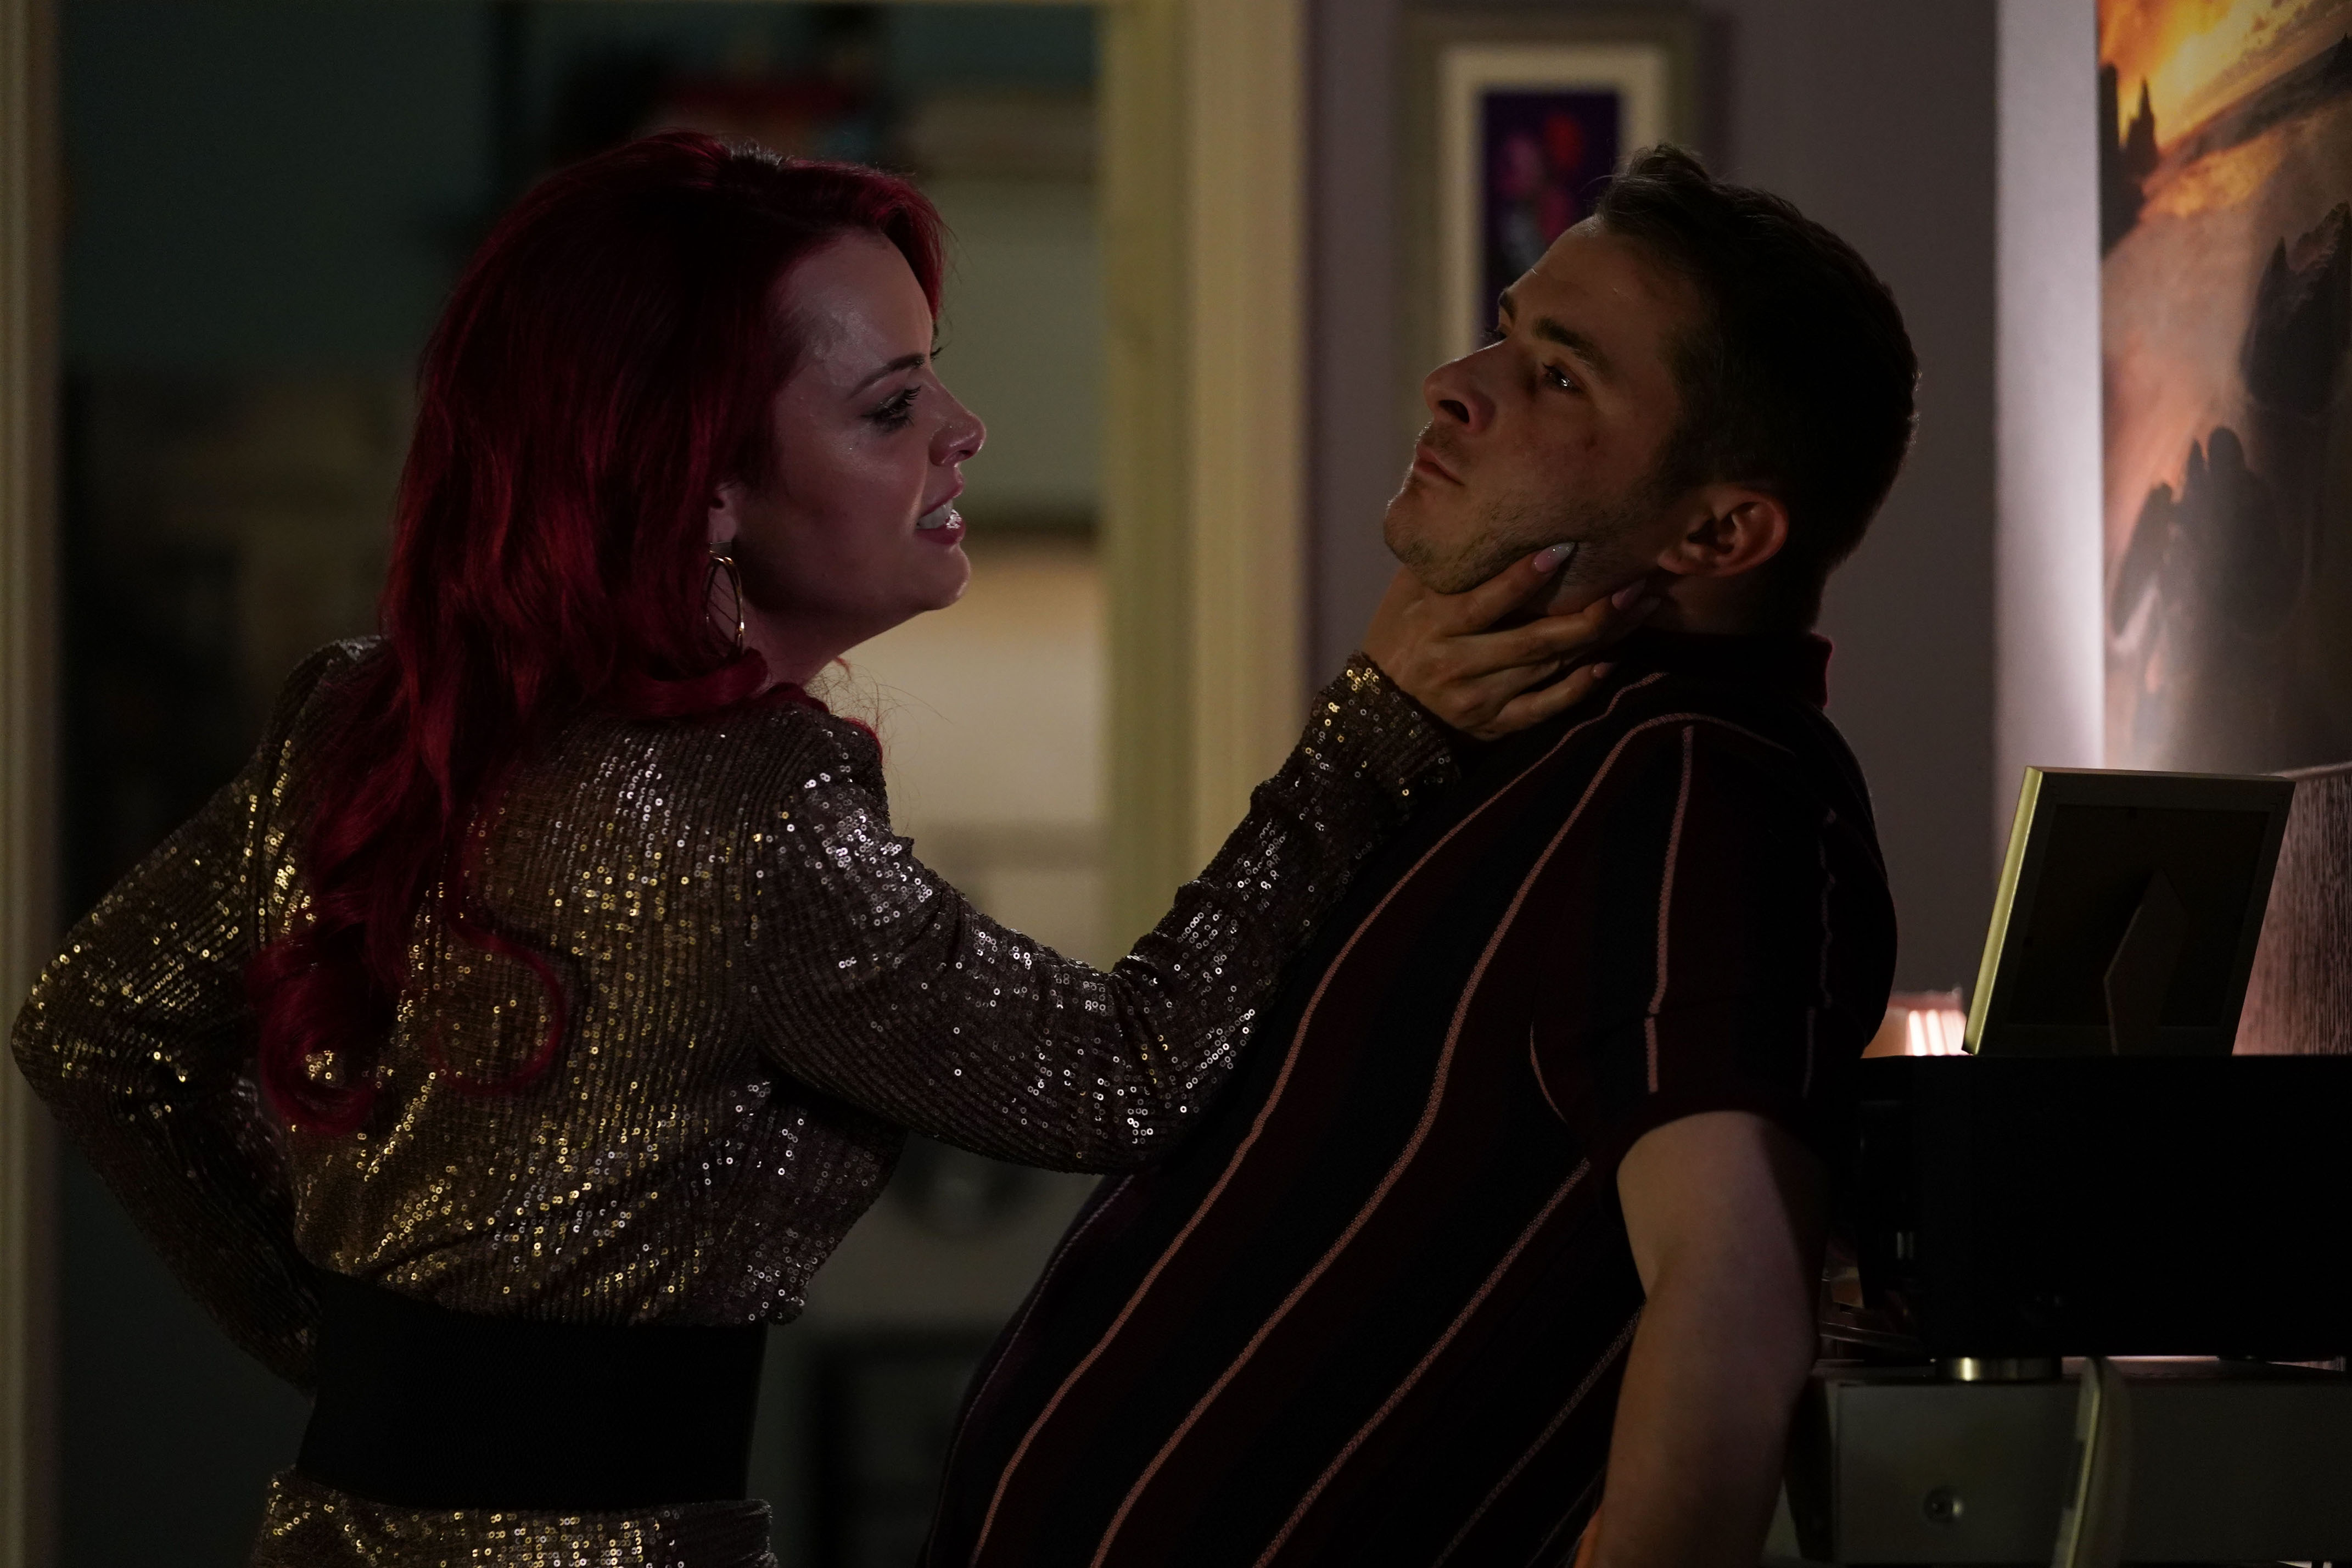 WARNING: Embargoed for publication until 00:00:01 on 24/08/2019 - Programme Name: EastEnders - July - September - 2019 - TX: 30/08/2019 - Episode: EastEnders - July - September - 2019 - 5981 (No. 5981) - Picture Shows: *NOT FOR USE PRE-TX WITHOUT PRIOR APPROVAL* Whitney confronts Ben Whitney Dean (SHONA MCGARTY), Ben Mitchell (MAX BOWDEN) - (C) BBC - Photographer: Jack Barnes